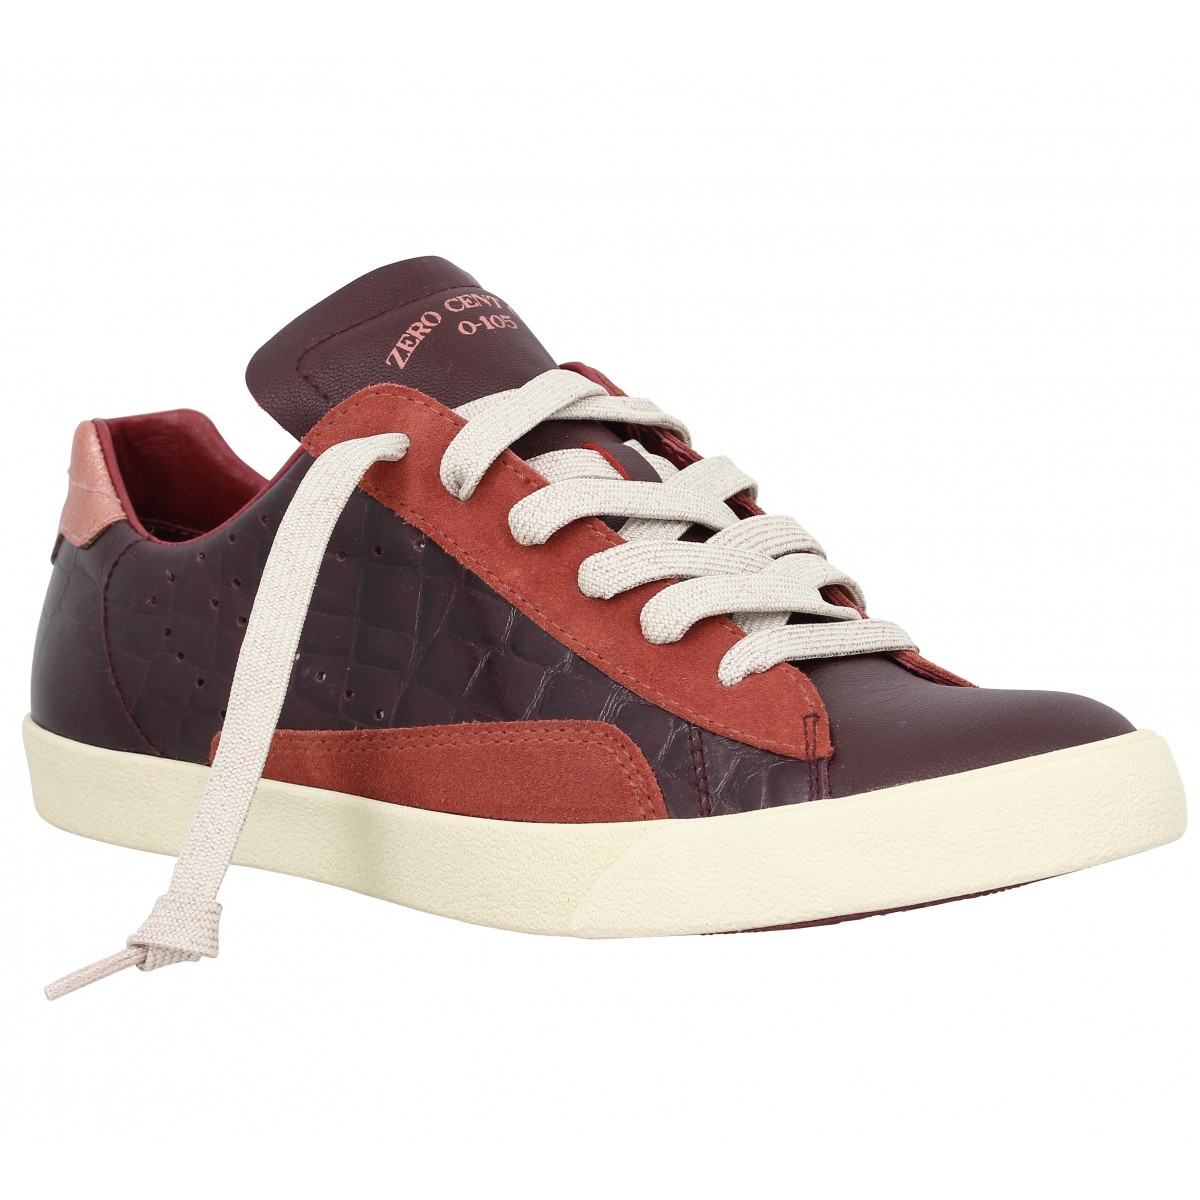 Baskets 0-105 Stan Chris Djessie cuir Femme Bordeaux